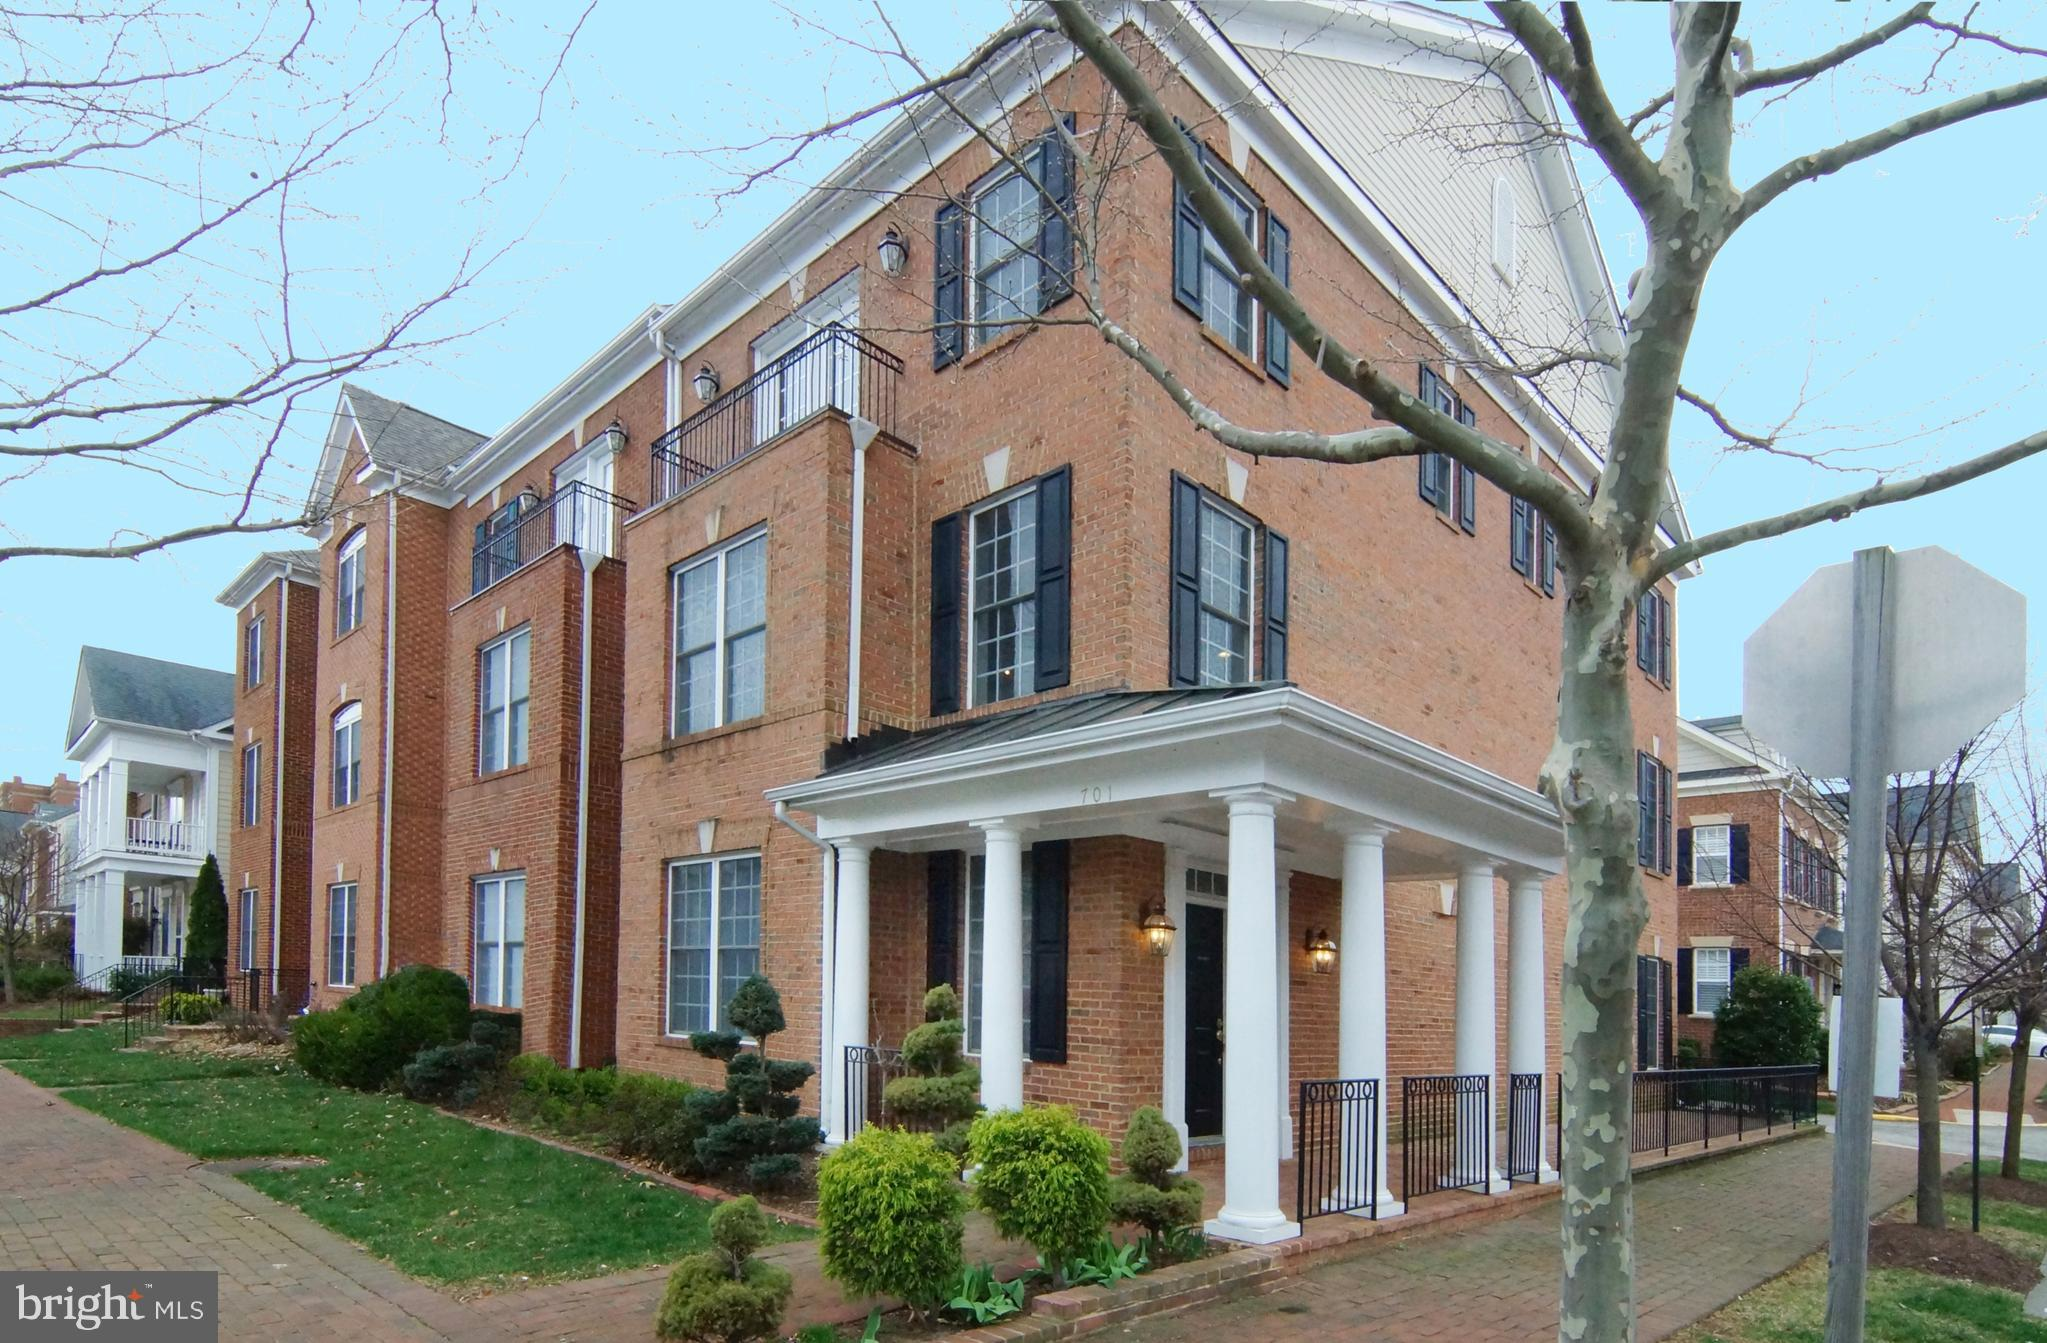 2600 sq.ft. of well appointed end luxury town home in Belmont Bay, a water community on the Occoquan River in NE Prince William County.  Great location and well kept property is a great location for commuting, plus a wonderful, quiet  community with plenty of opportunities for active living.